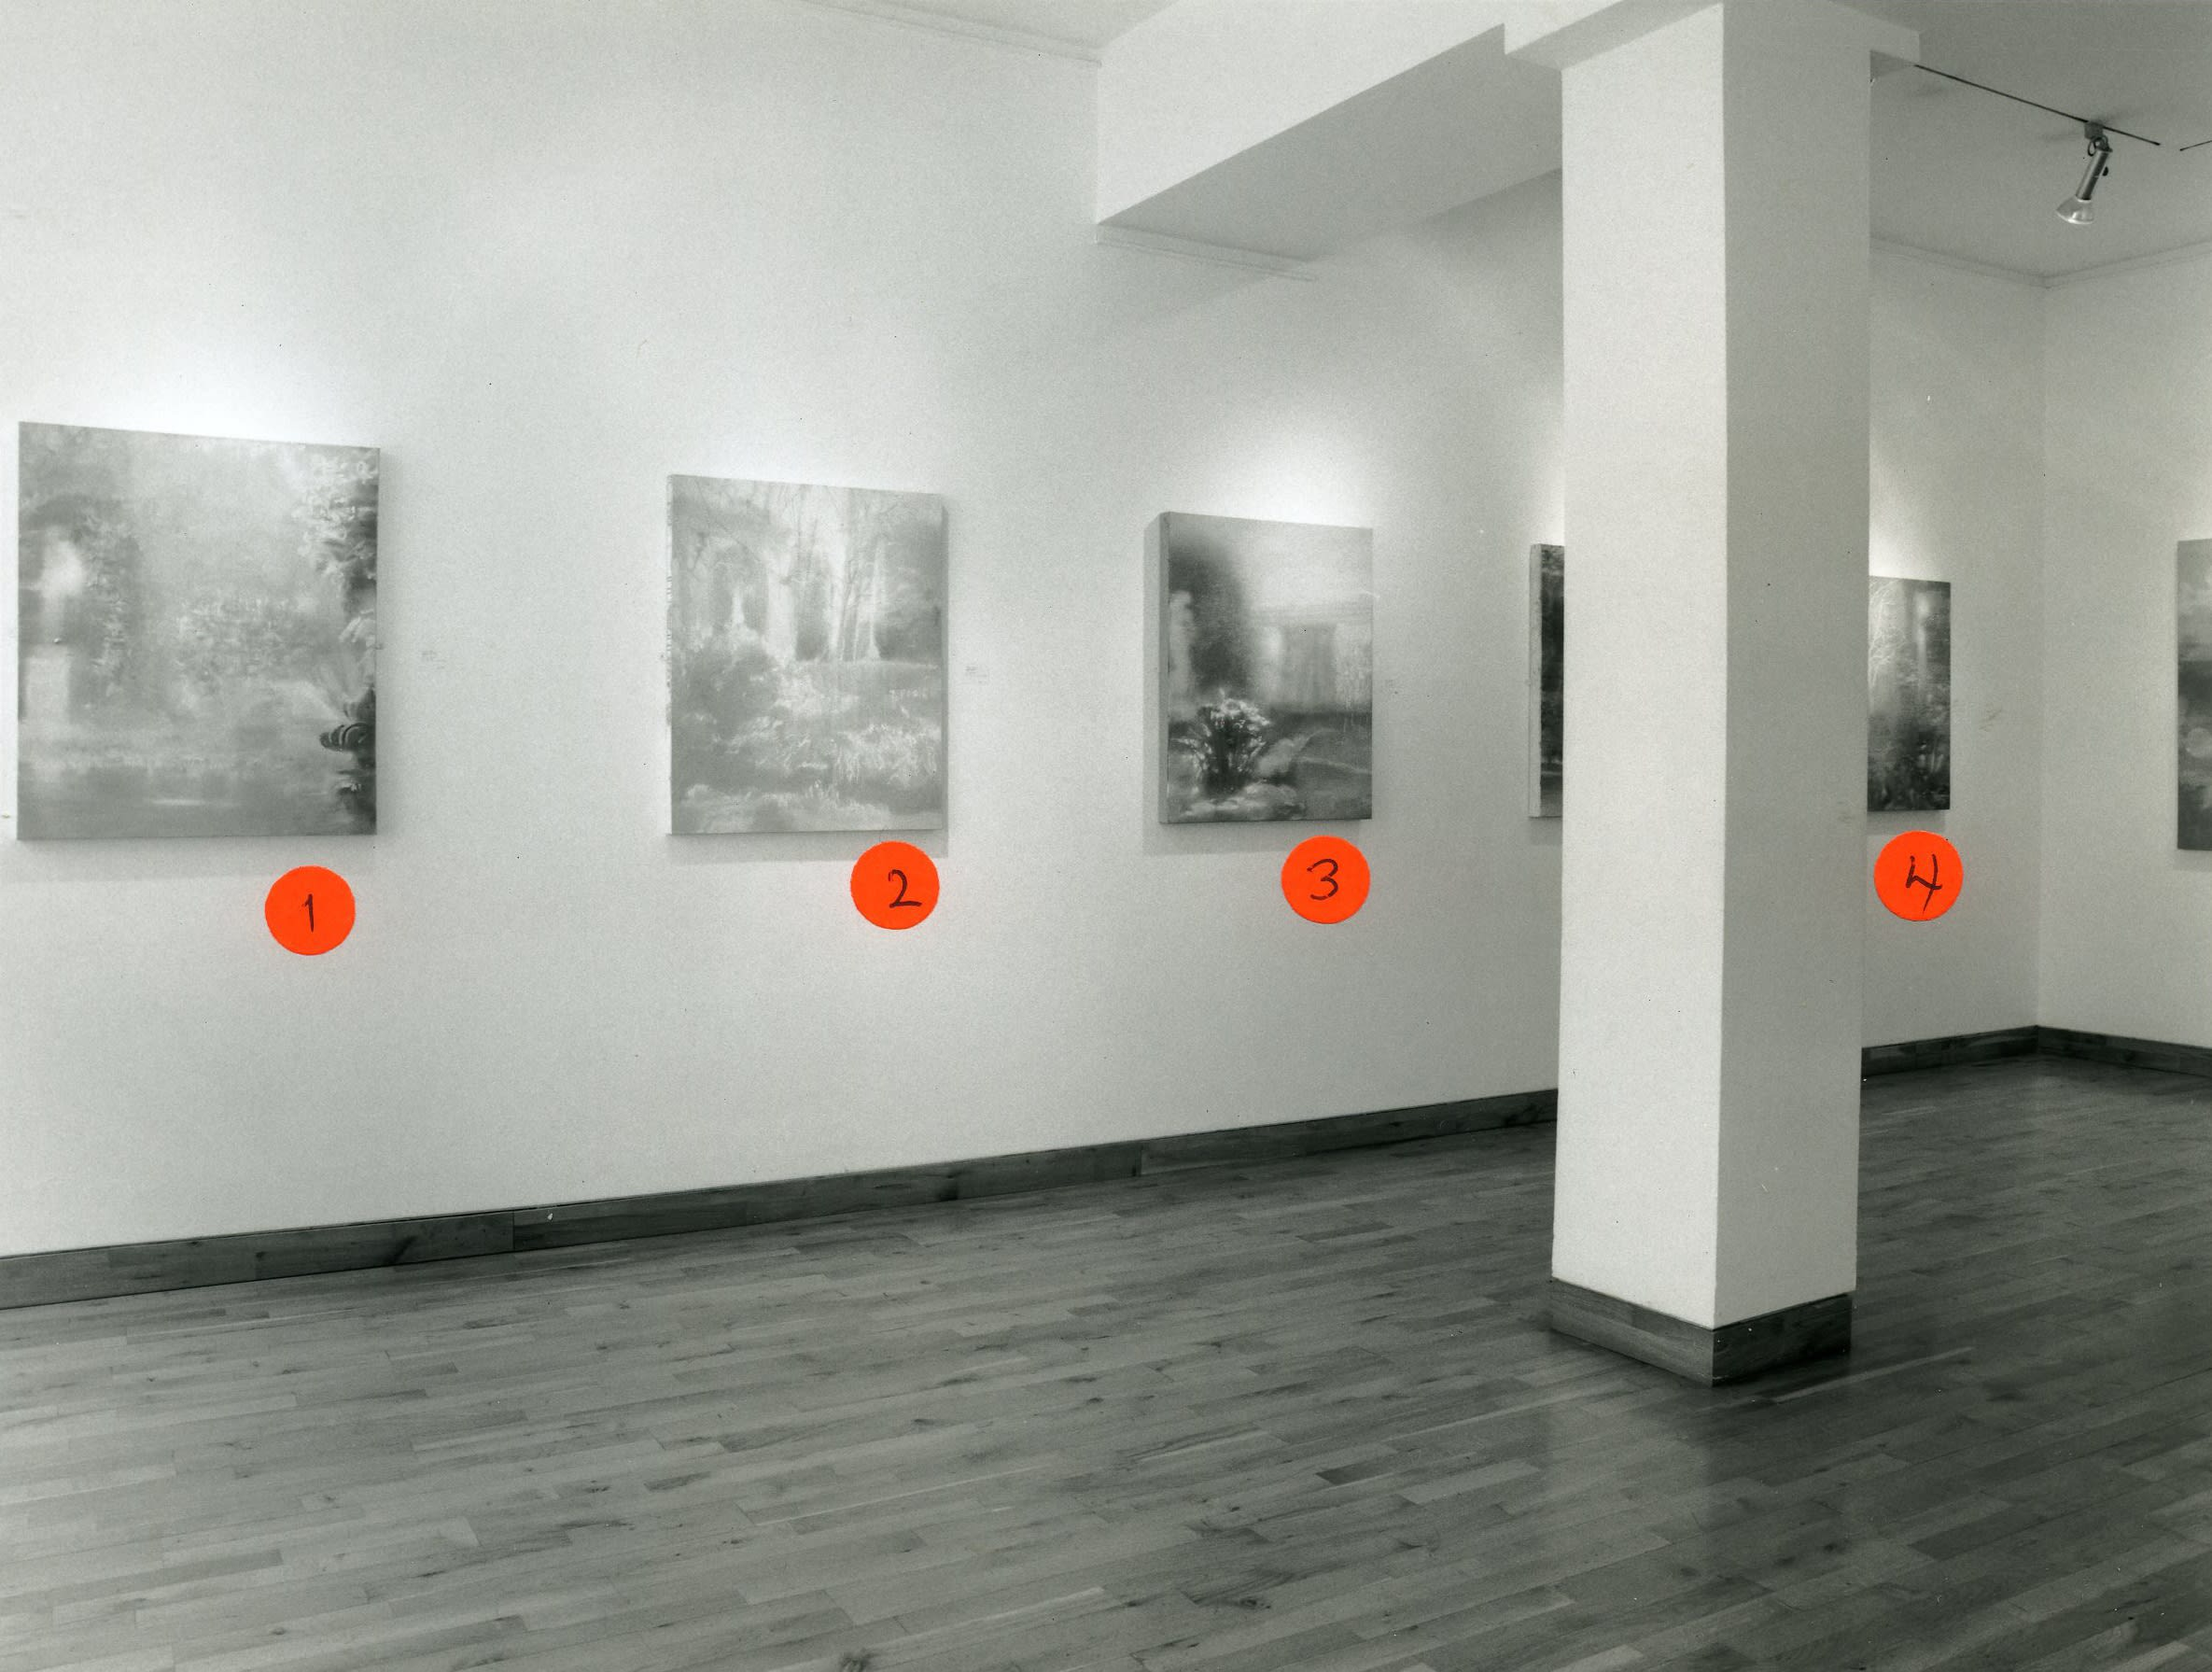 """<span class=""""link fancybox-details-link""""><a href=""""/exhibitions/157/works/image_standalone682/"""">View Detail Page</a></span><p>MARINA KARELLA 